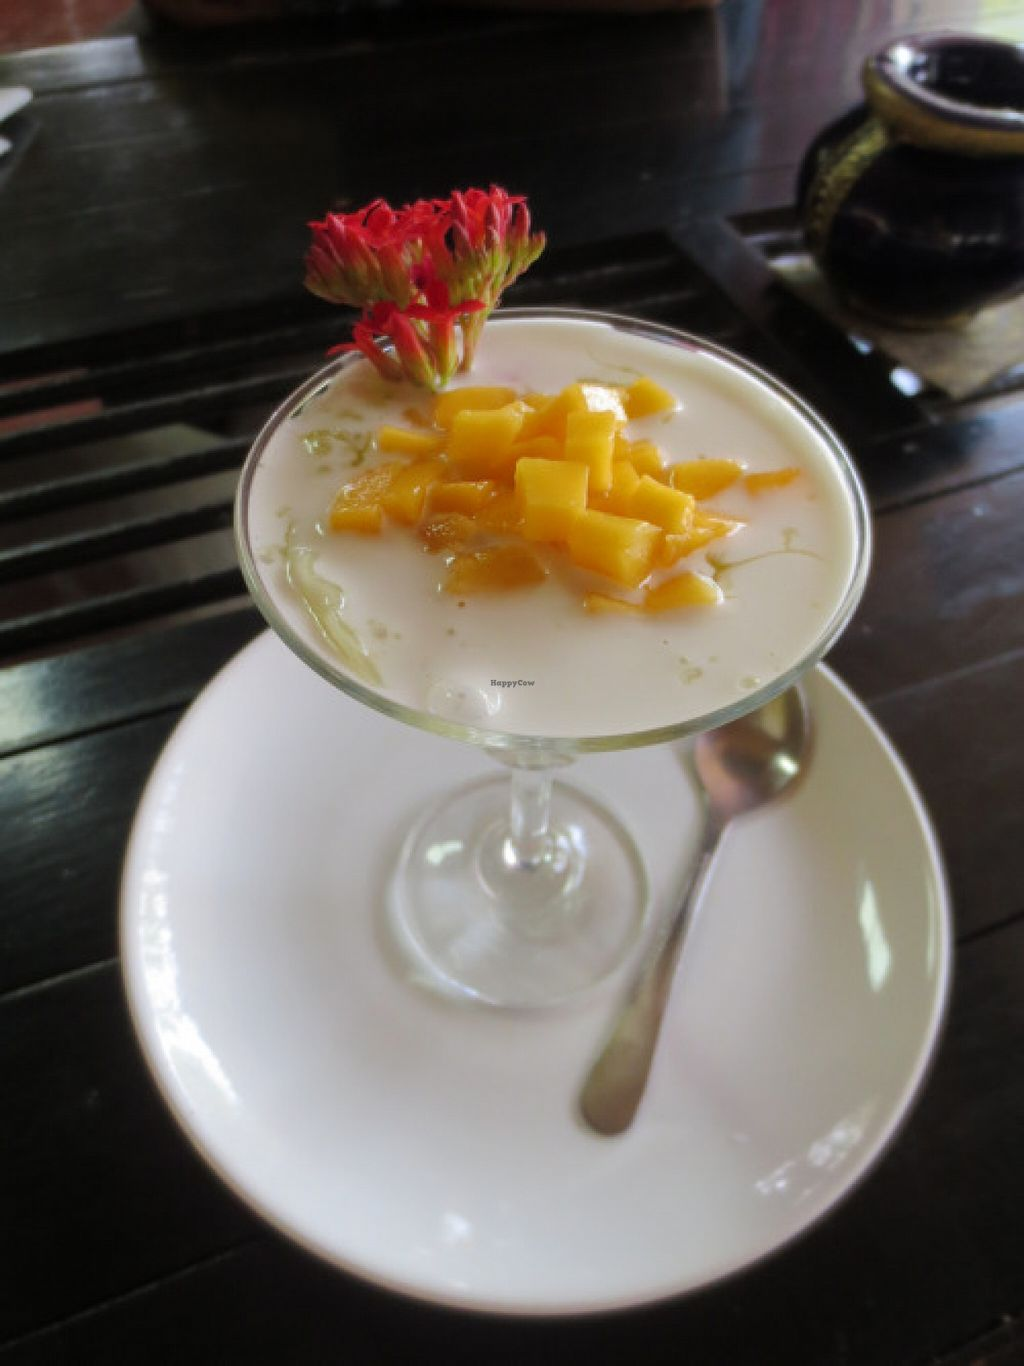 "Photo of Isara Garden's  by <a href=""/members/profile/lisaz3349"">lisaz3349</a> <br/>Learned how to make mango tapioca pudding!  <br/> March 17, 2016  - <a href='/contact/abuse/image/30214/140356'>Report</a>"